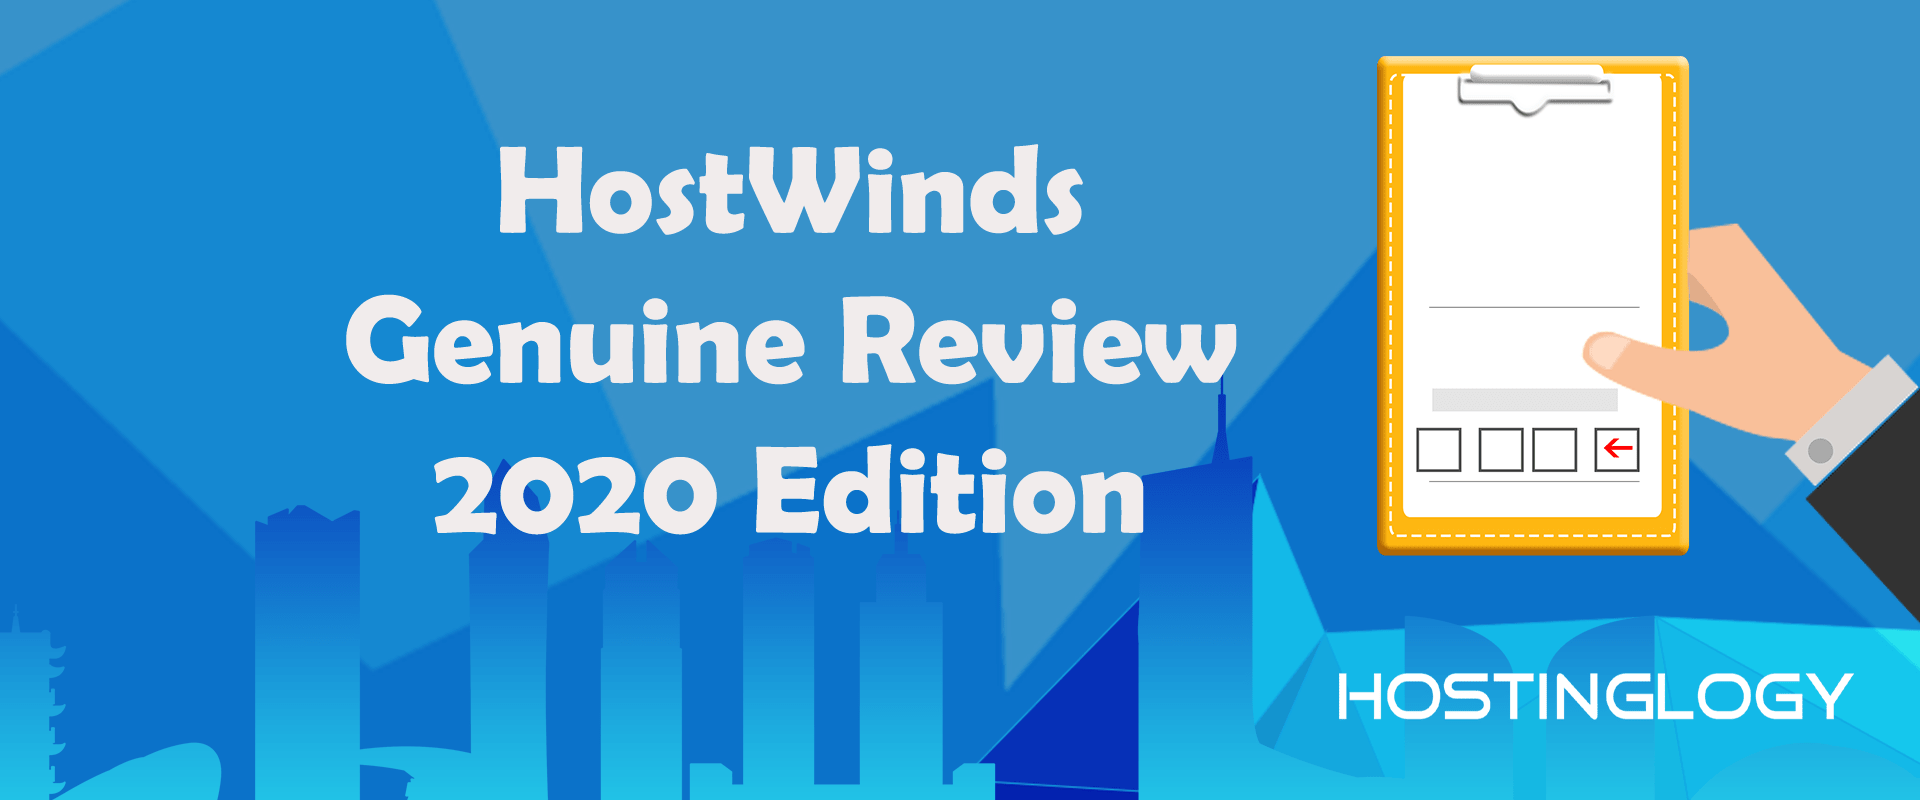 HostWinds Genuine Review 2021 Edition